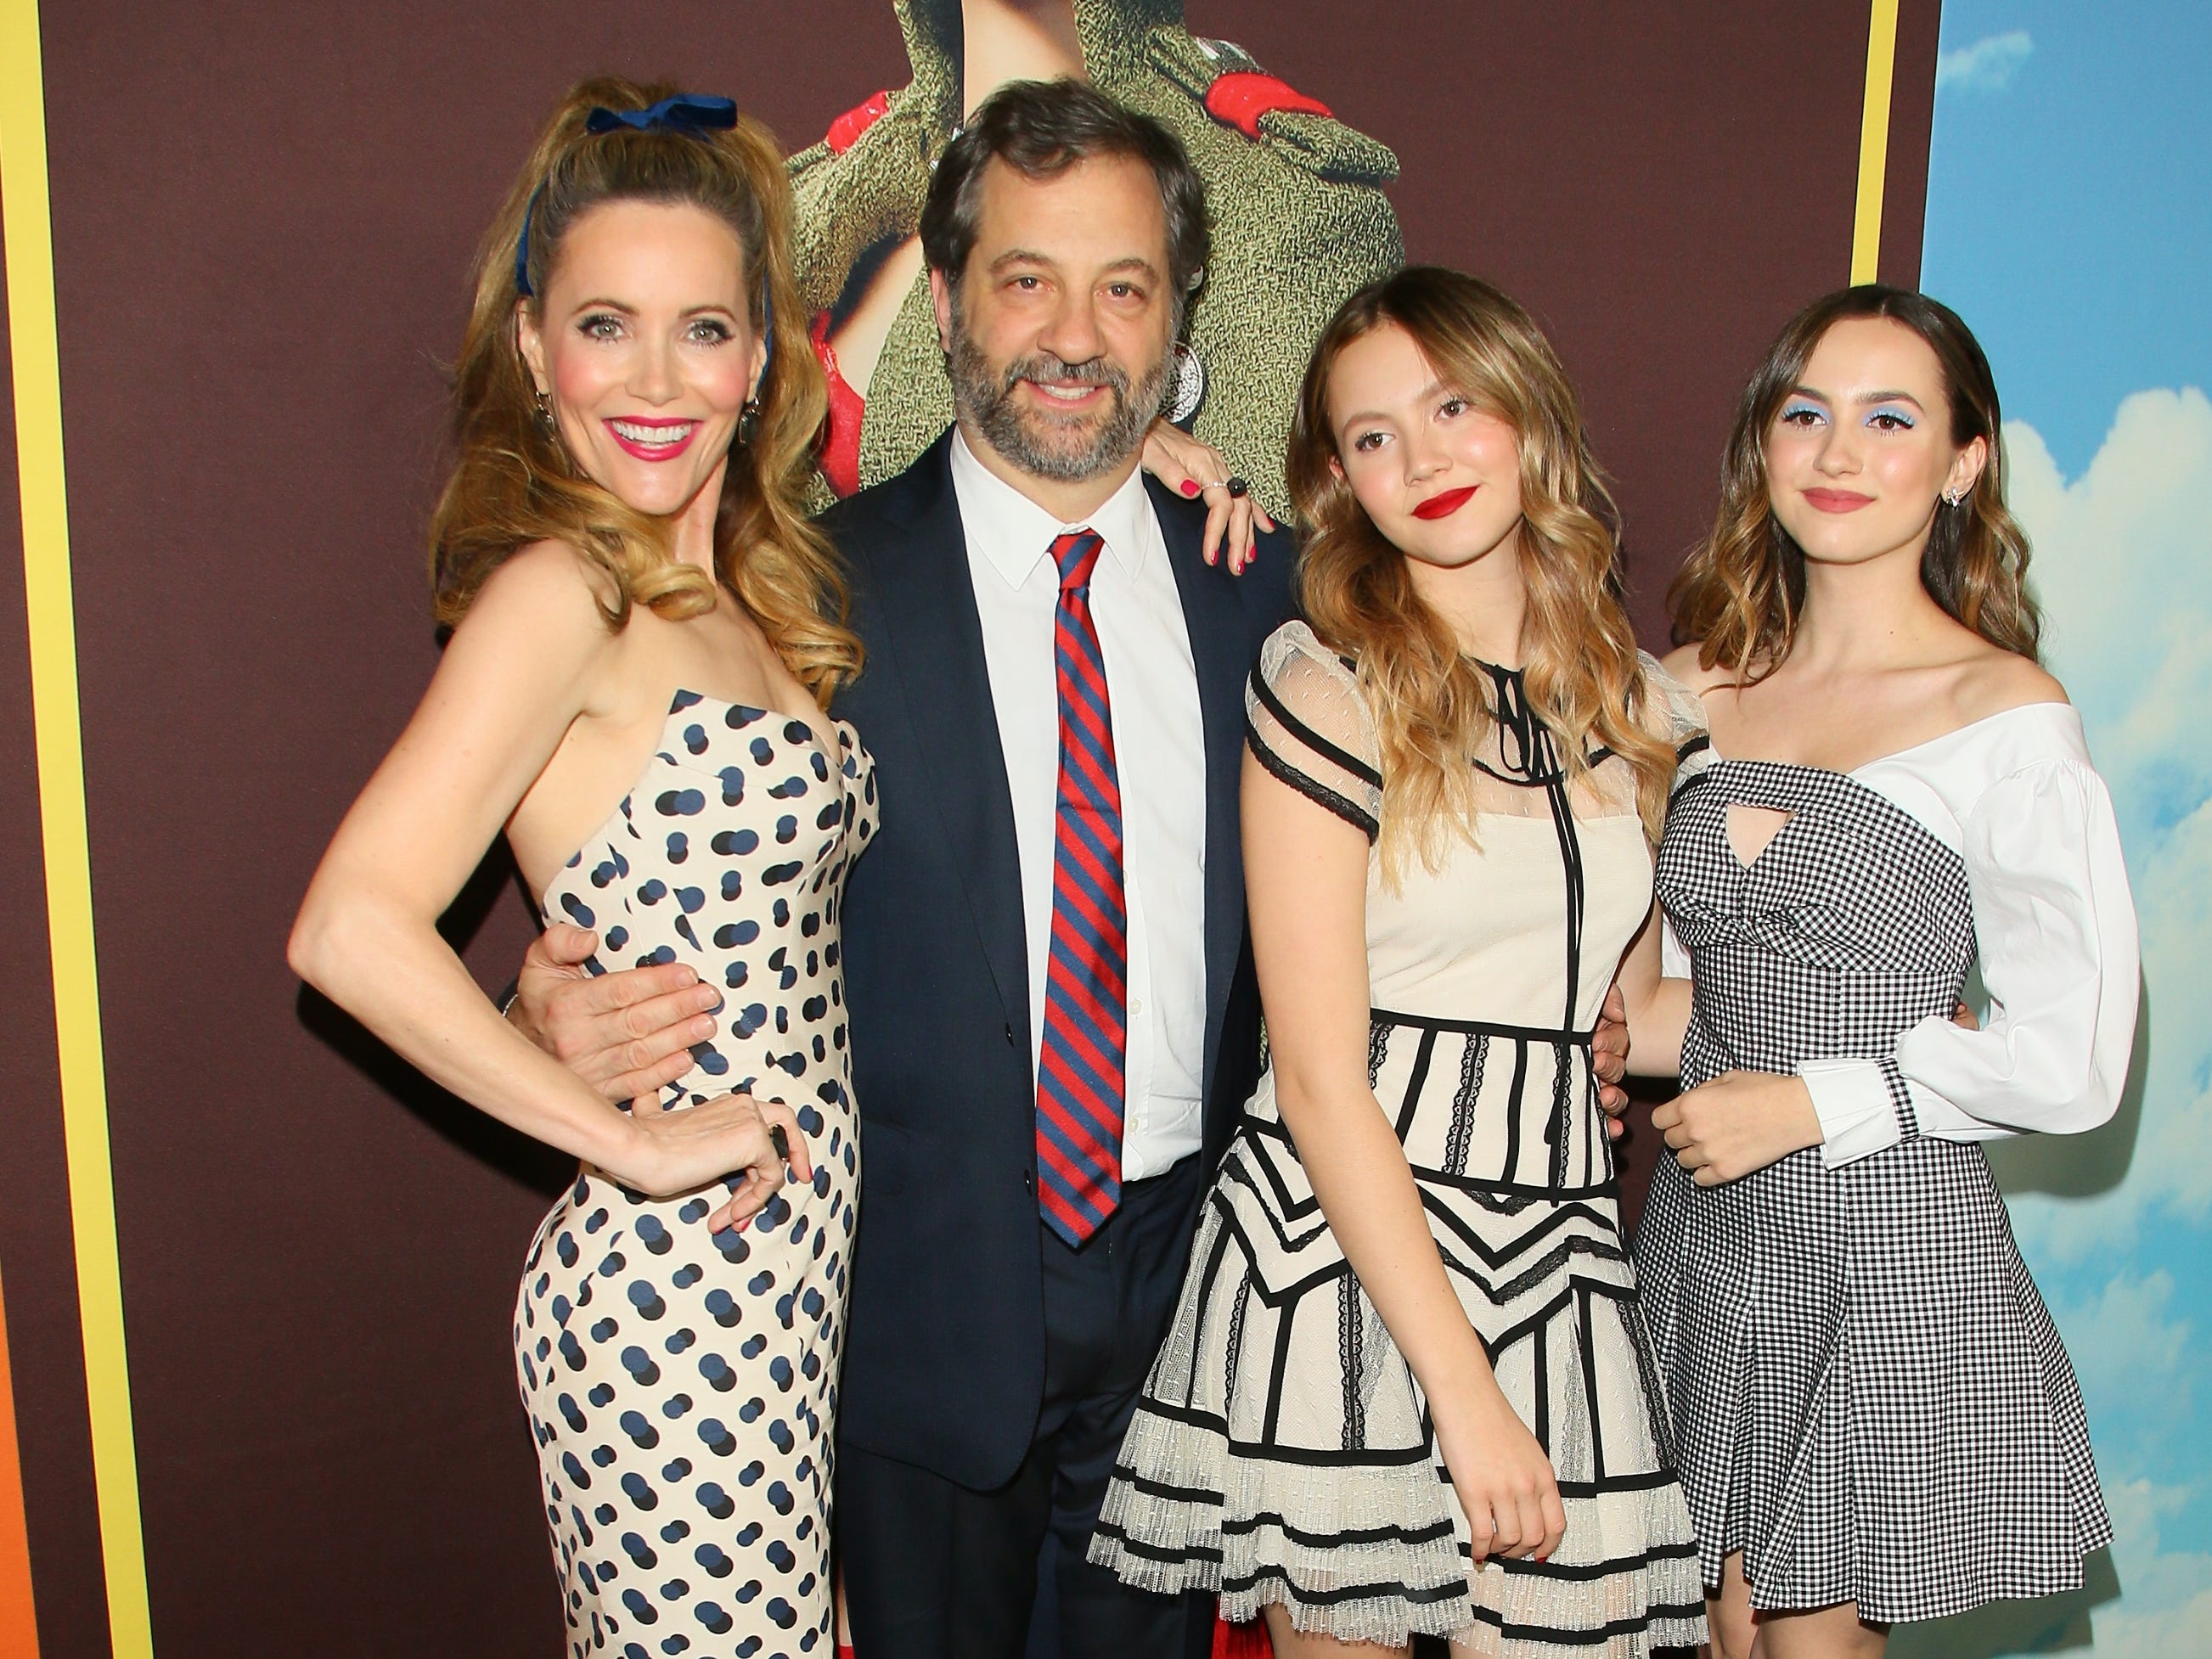 HOLLYWOOD, CALIFORNIA - DECEMBER 10: Leslie Mann, Iris Apatow, Maude Apatow and Judd Apatow attend Universal Pictures and DreamWorks Pictures' premiere of 'Welcome To Marwen' at ArcLight Hollywood on December 10, 2018 in Hollywood, California.  (Photo by JB Lacroix/Getty Images) ORG XMIT: 775265183 ORIG FILE ID: 1071608942